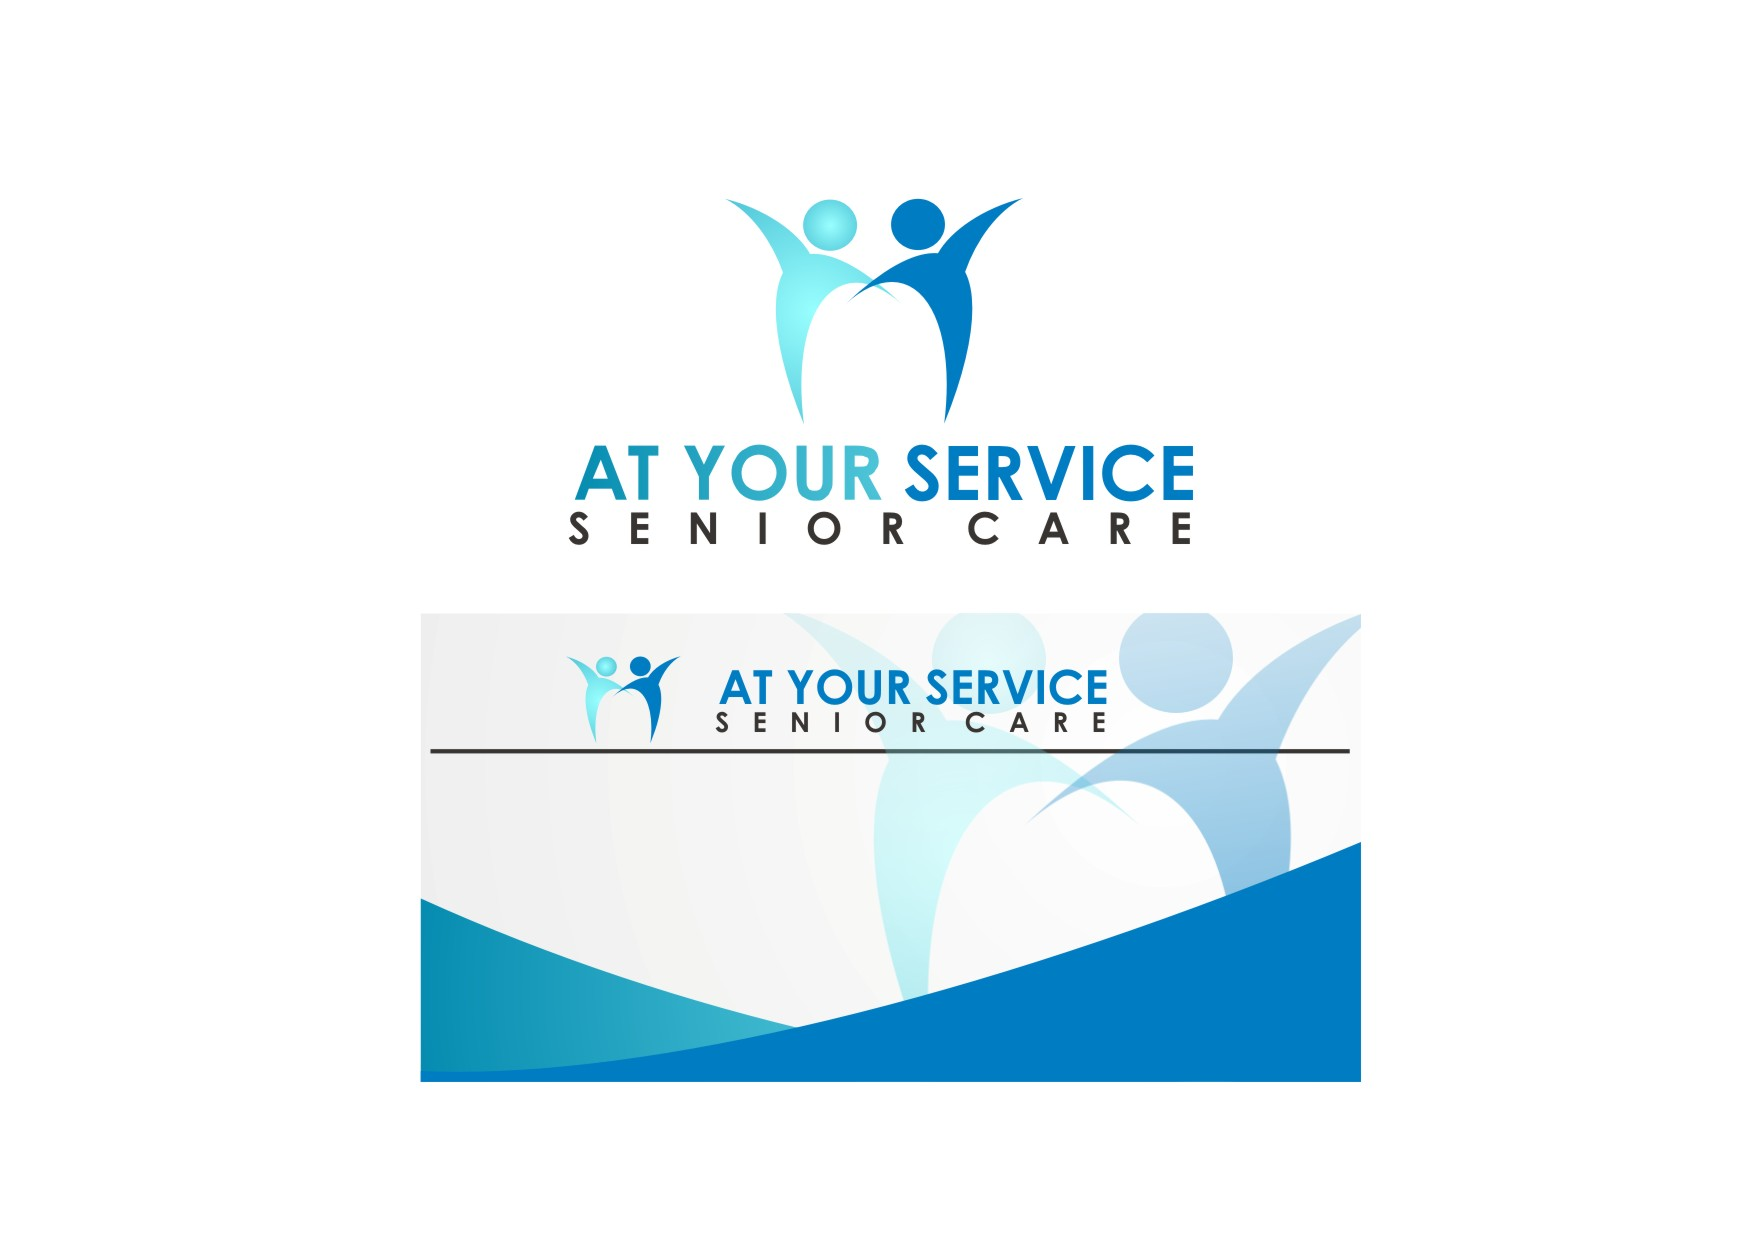 Logo Design by yanxsant - Entry No. 111 in the Logo Design Contest Care To Go Services.